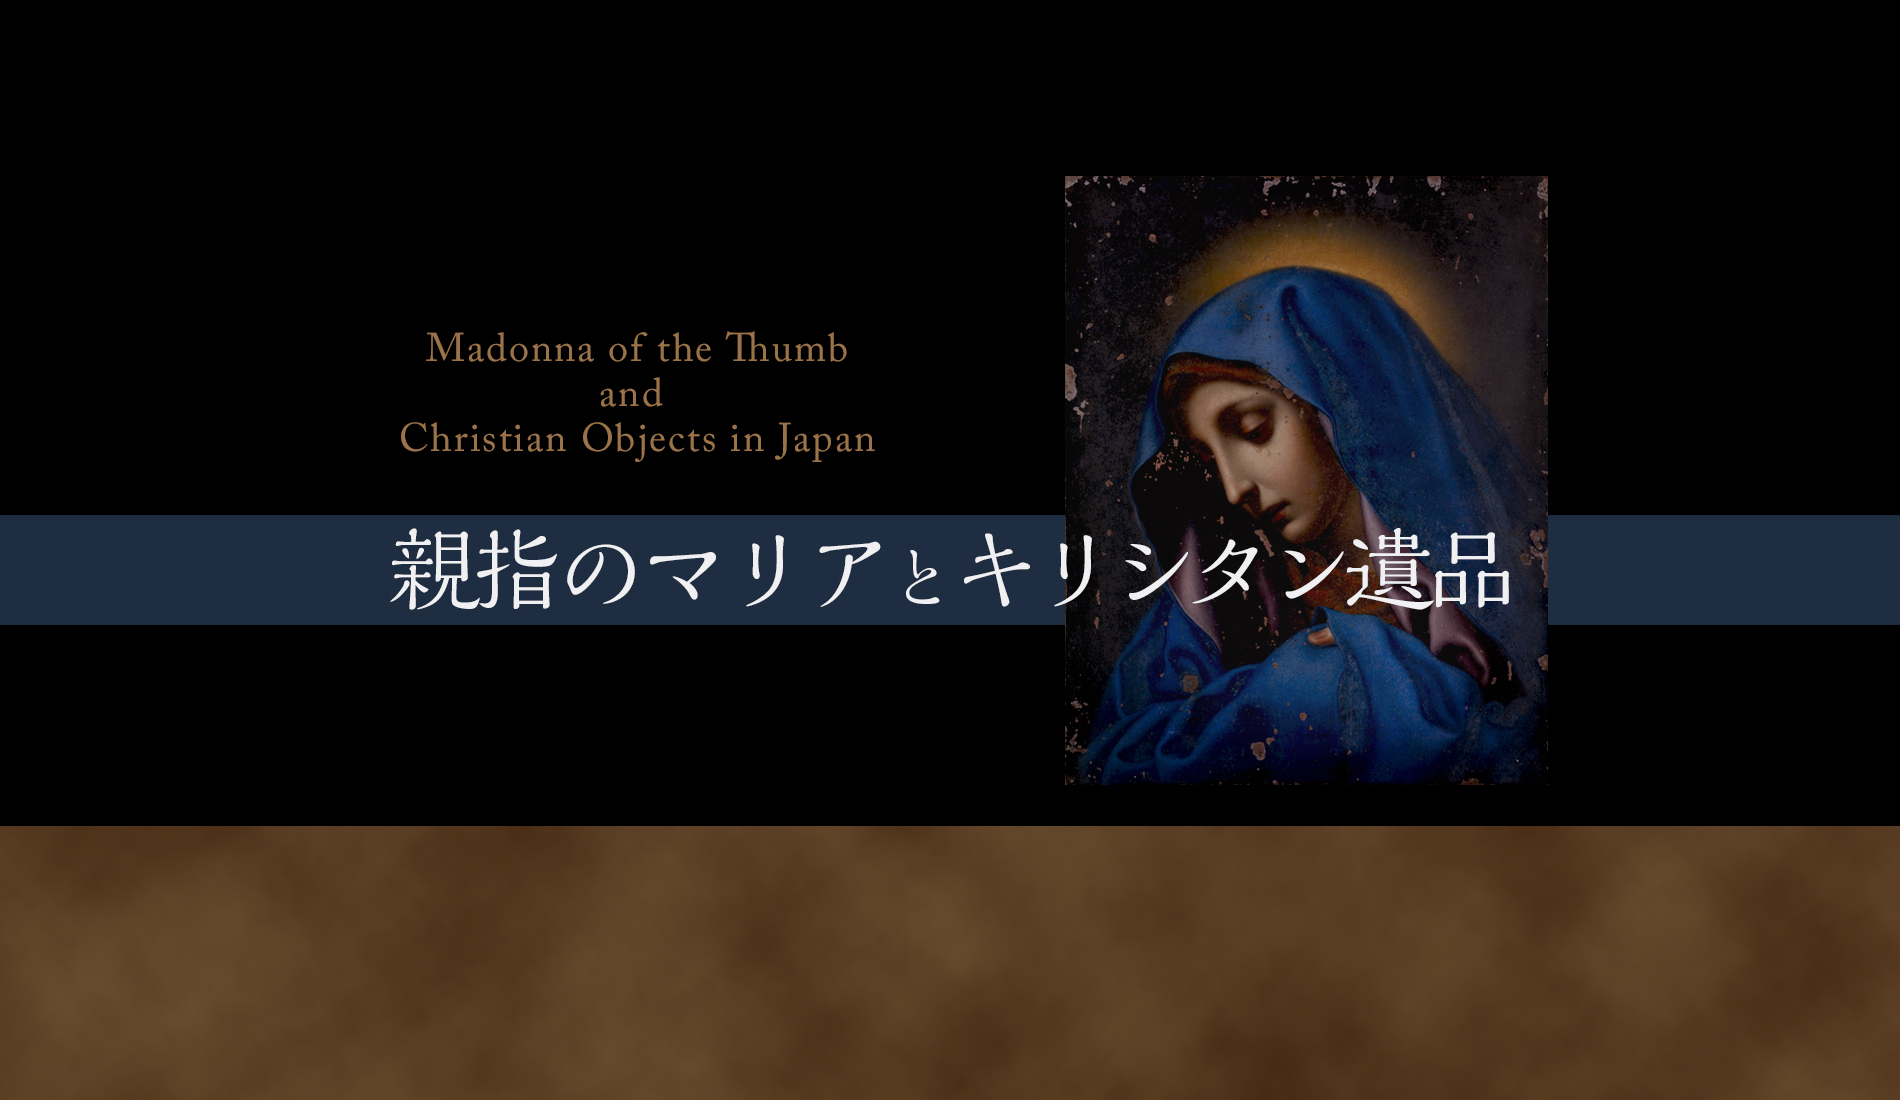 Madonna of the Thumb and Christian Objects in Japan